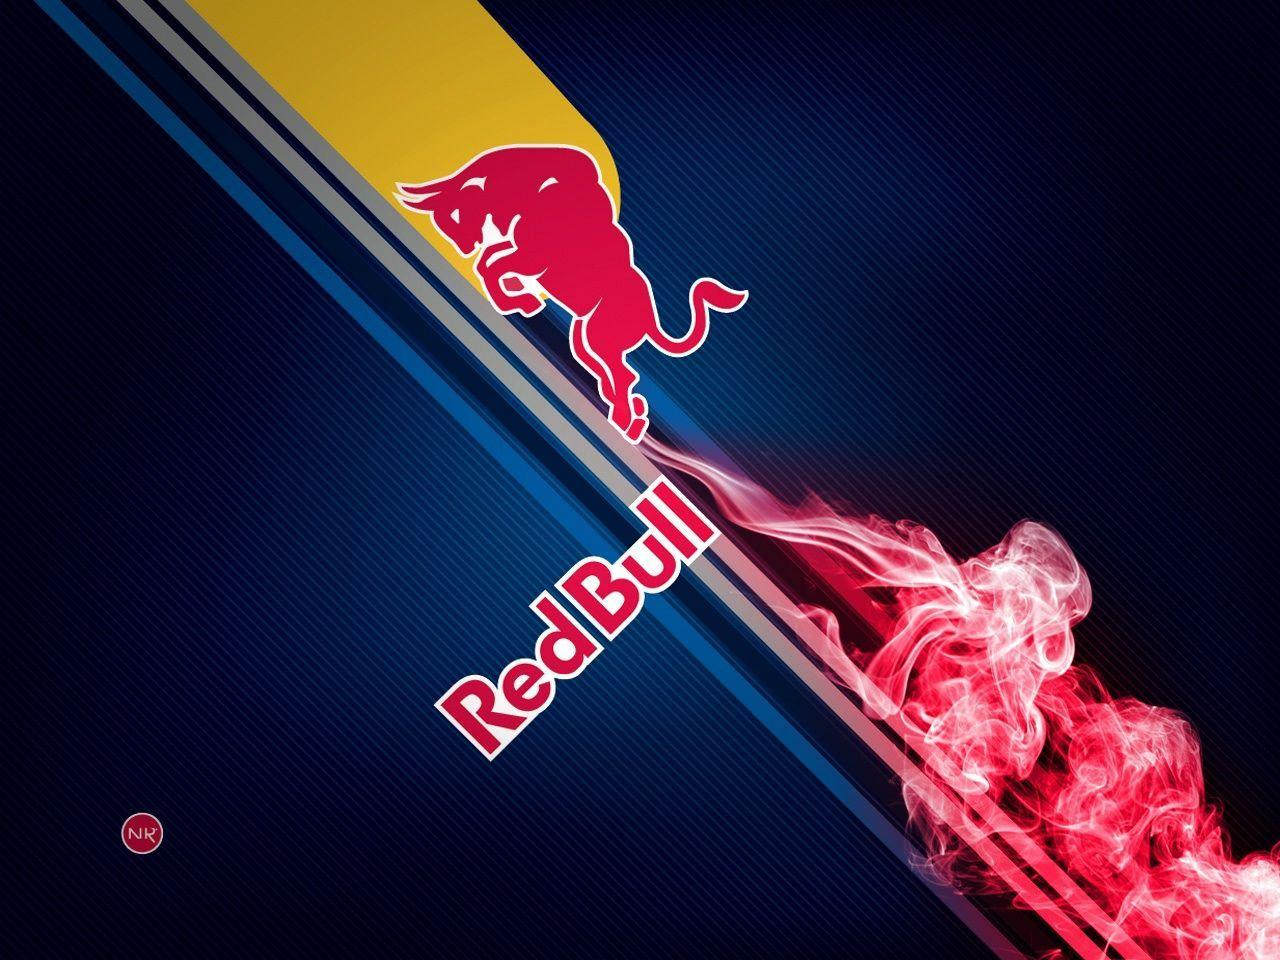 Wallpapers de RedBull!!